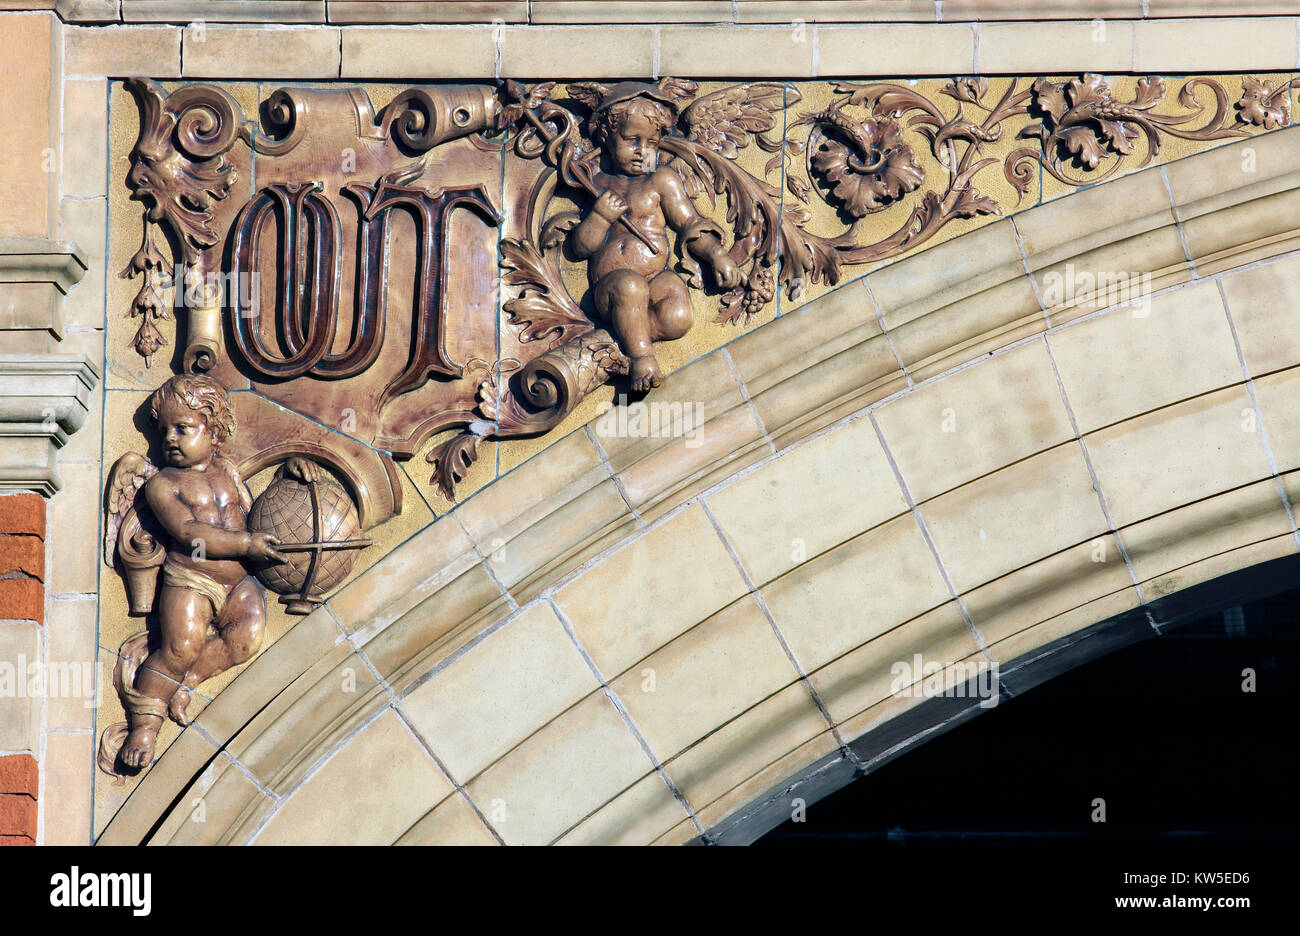 A close up of flamboyant detailing on an archway spandrel on the London Road elevation of Leicester station. 'Out' - Stock Image